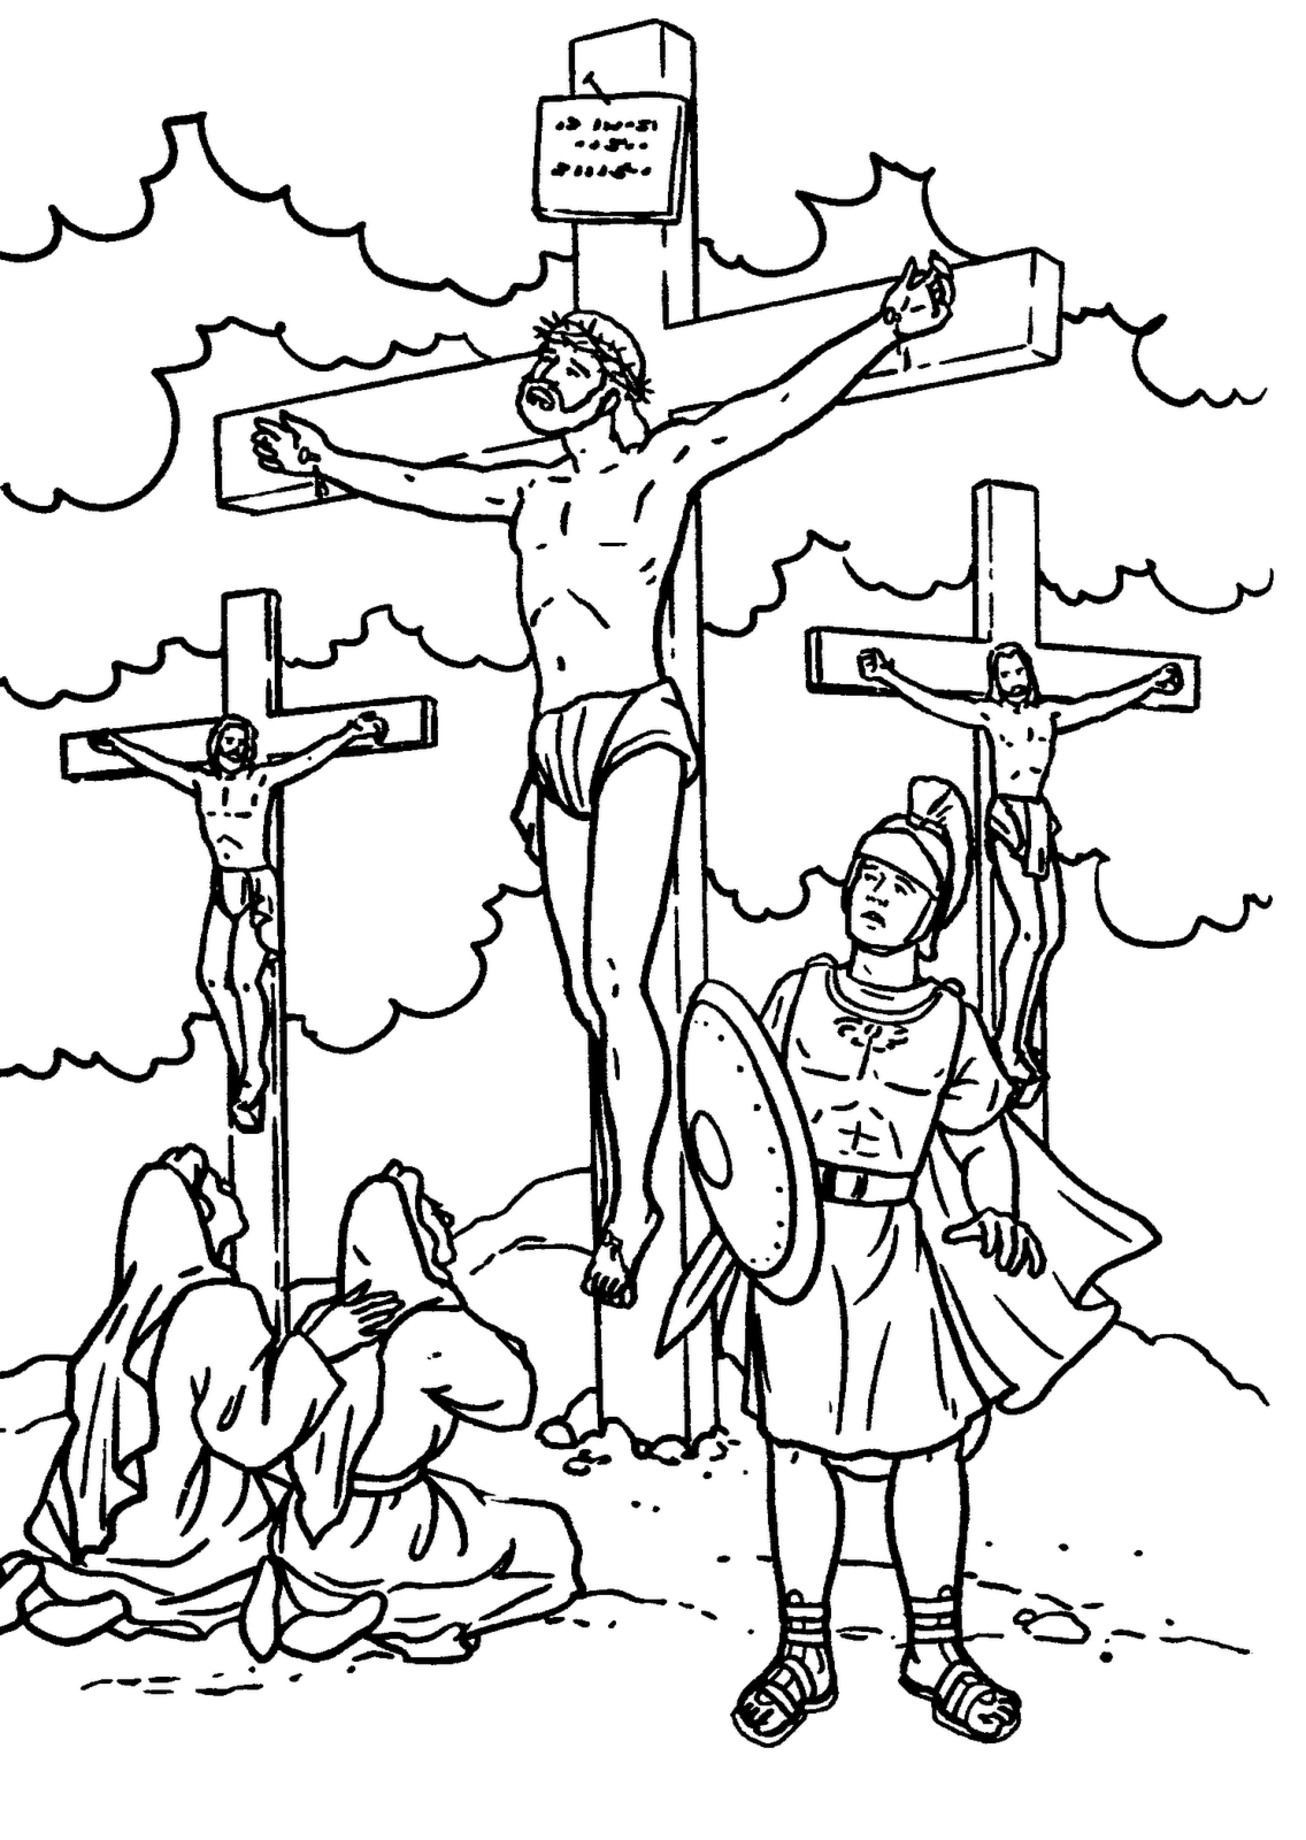 Bible Story Coloring Pages Bible Story Coloring Pages Jesus Crossed Coloringstar